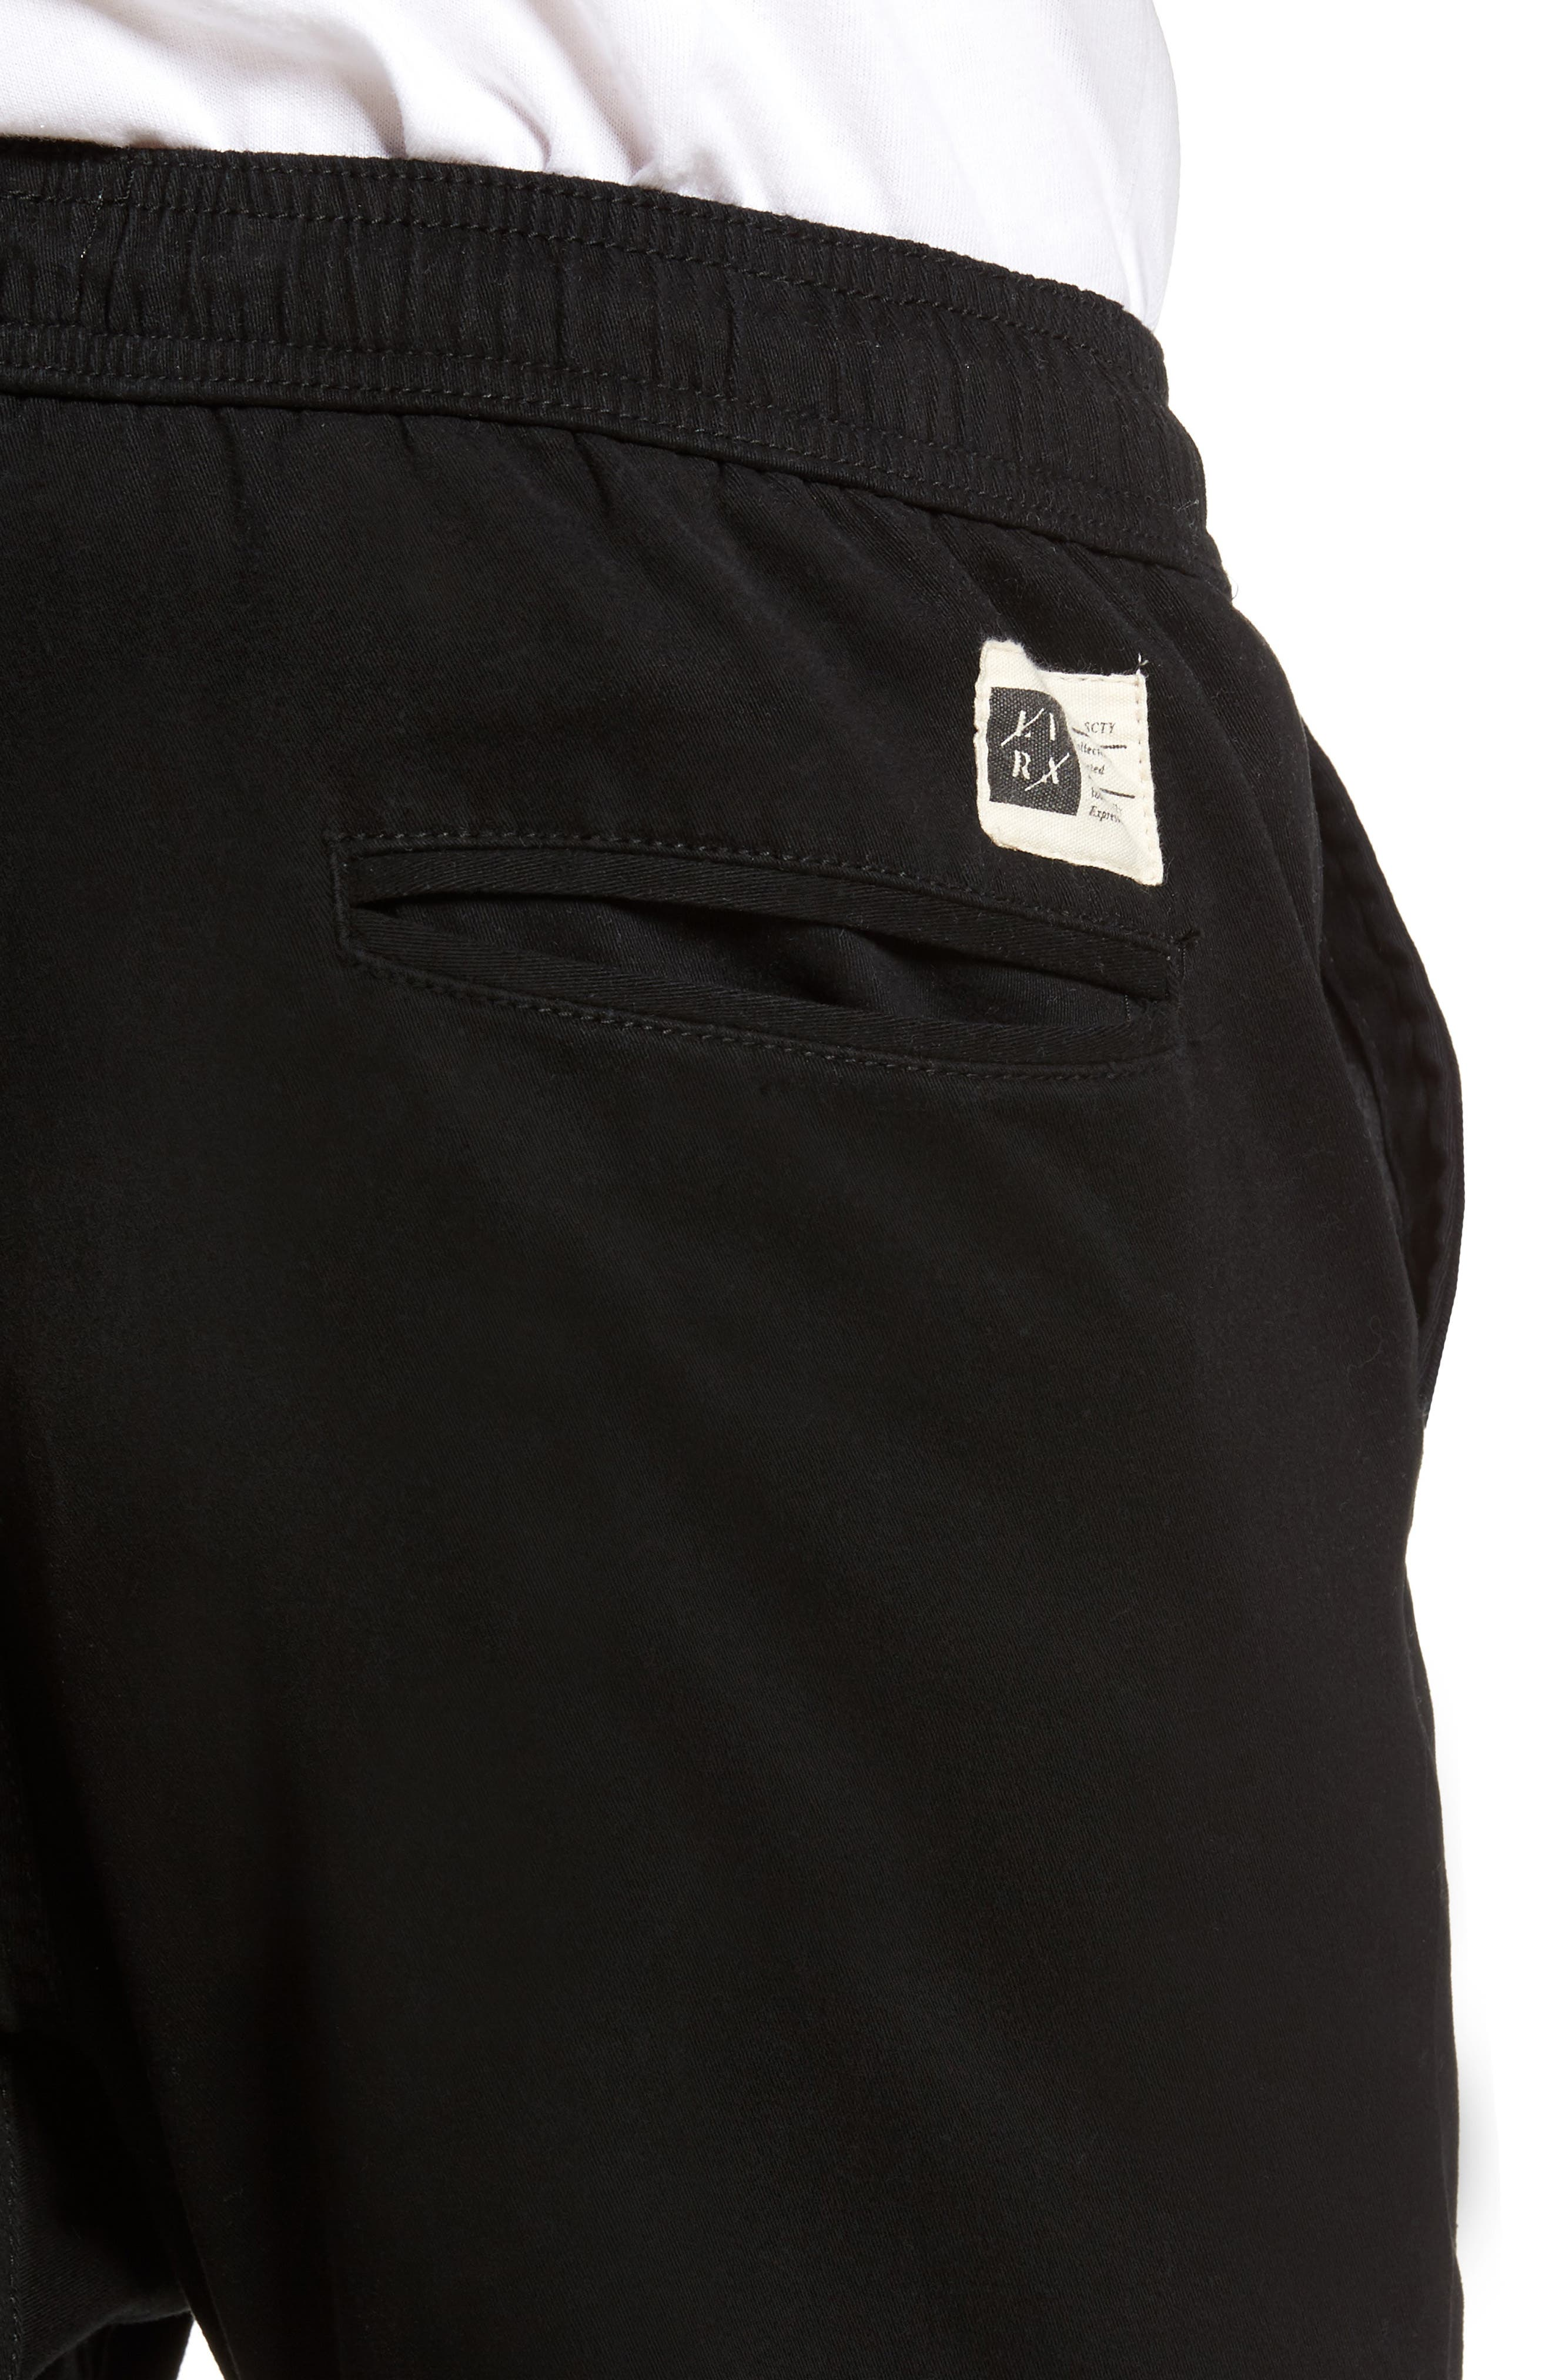 Weekend Jogger Pants,                             Alternate thumbnail 25, color,